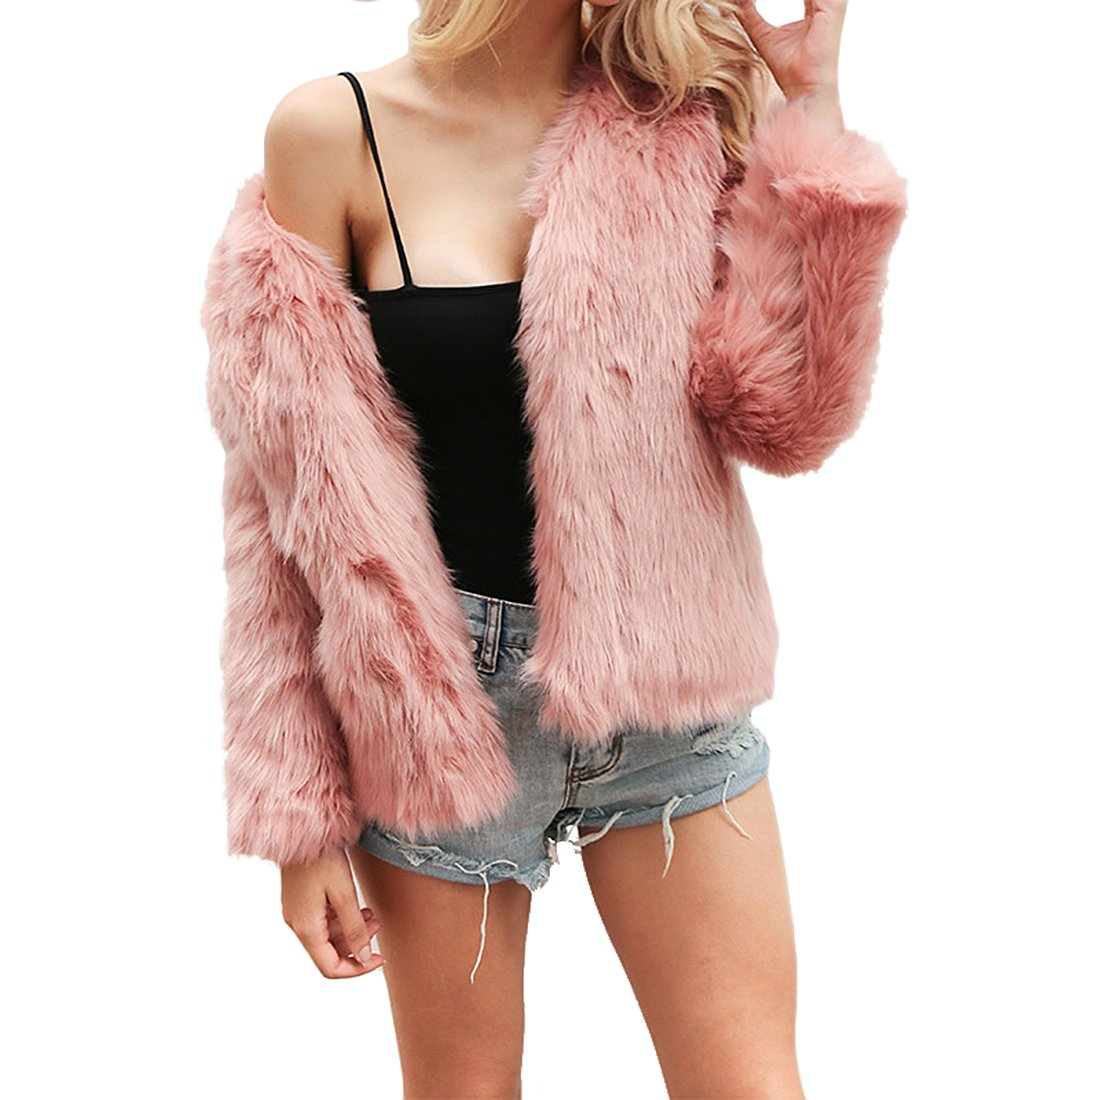 Women's Winter Warm Fluffy Faux Fur Coat Hooded Jacket Cardigan Outerwear Tops for Party Club Cocktail (Pink,US 0-2 = Asian S)